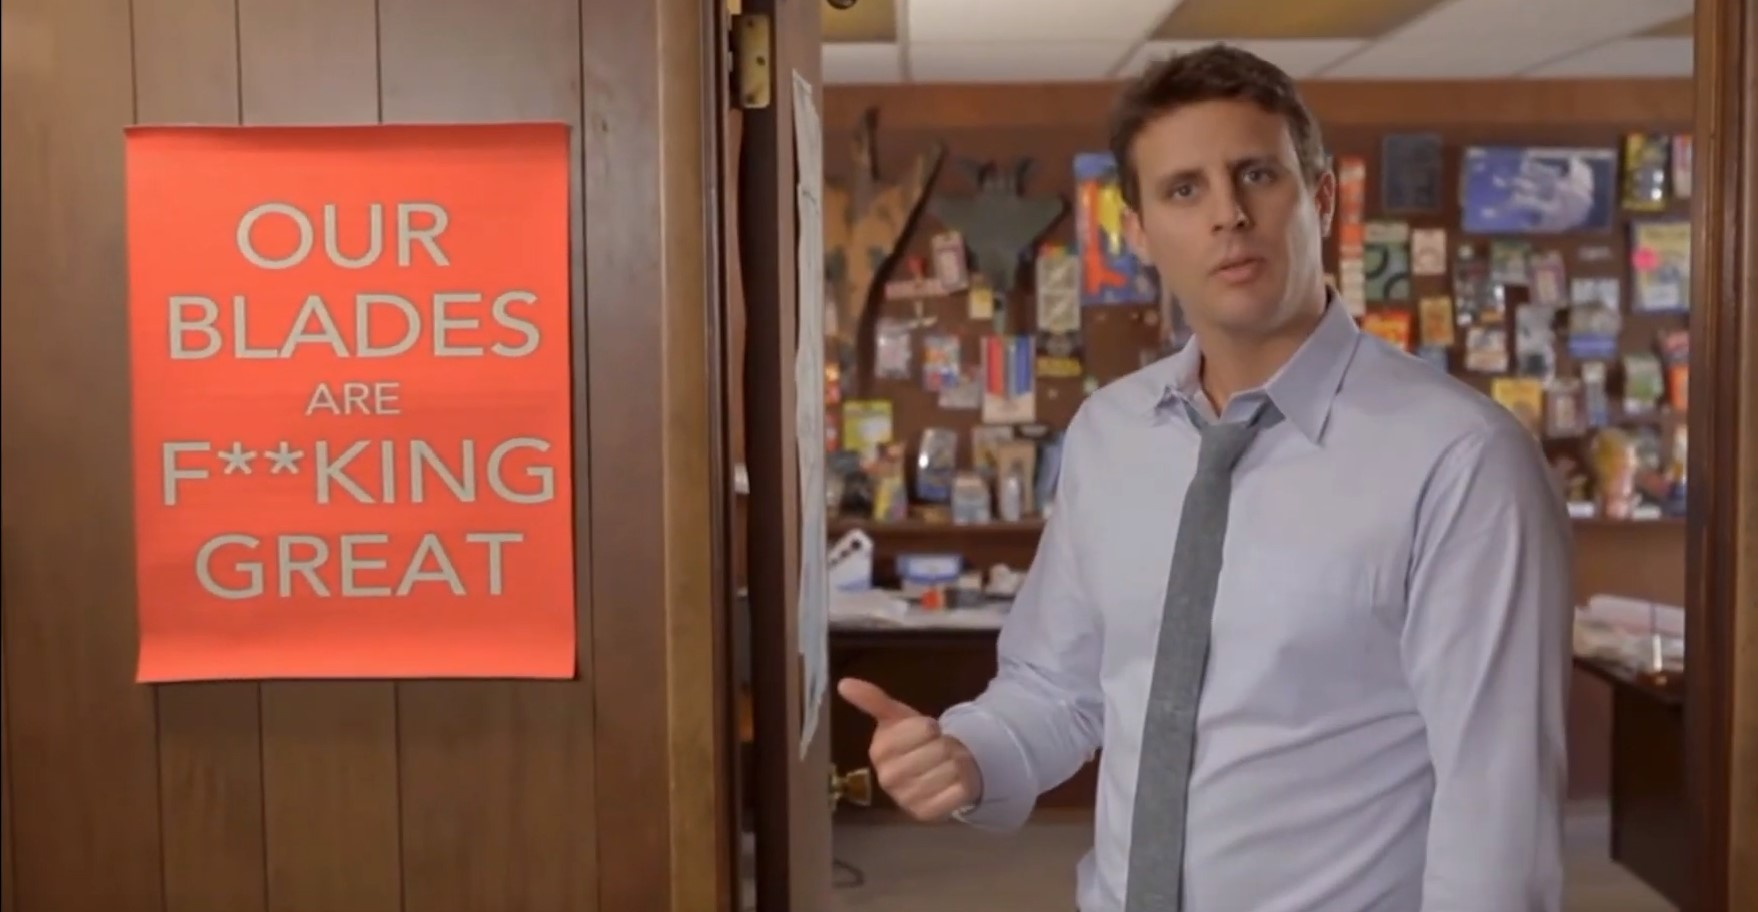 Dollar shave club has a very strong brand voice| GLS Group